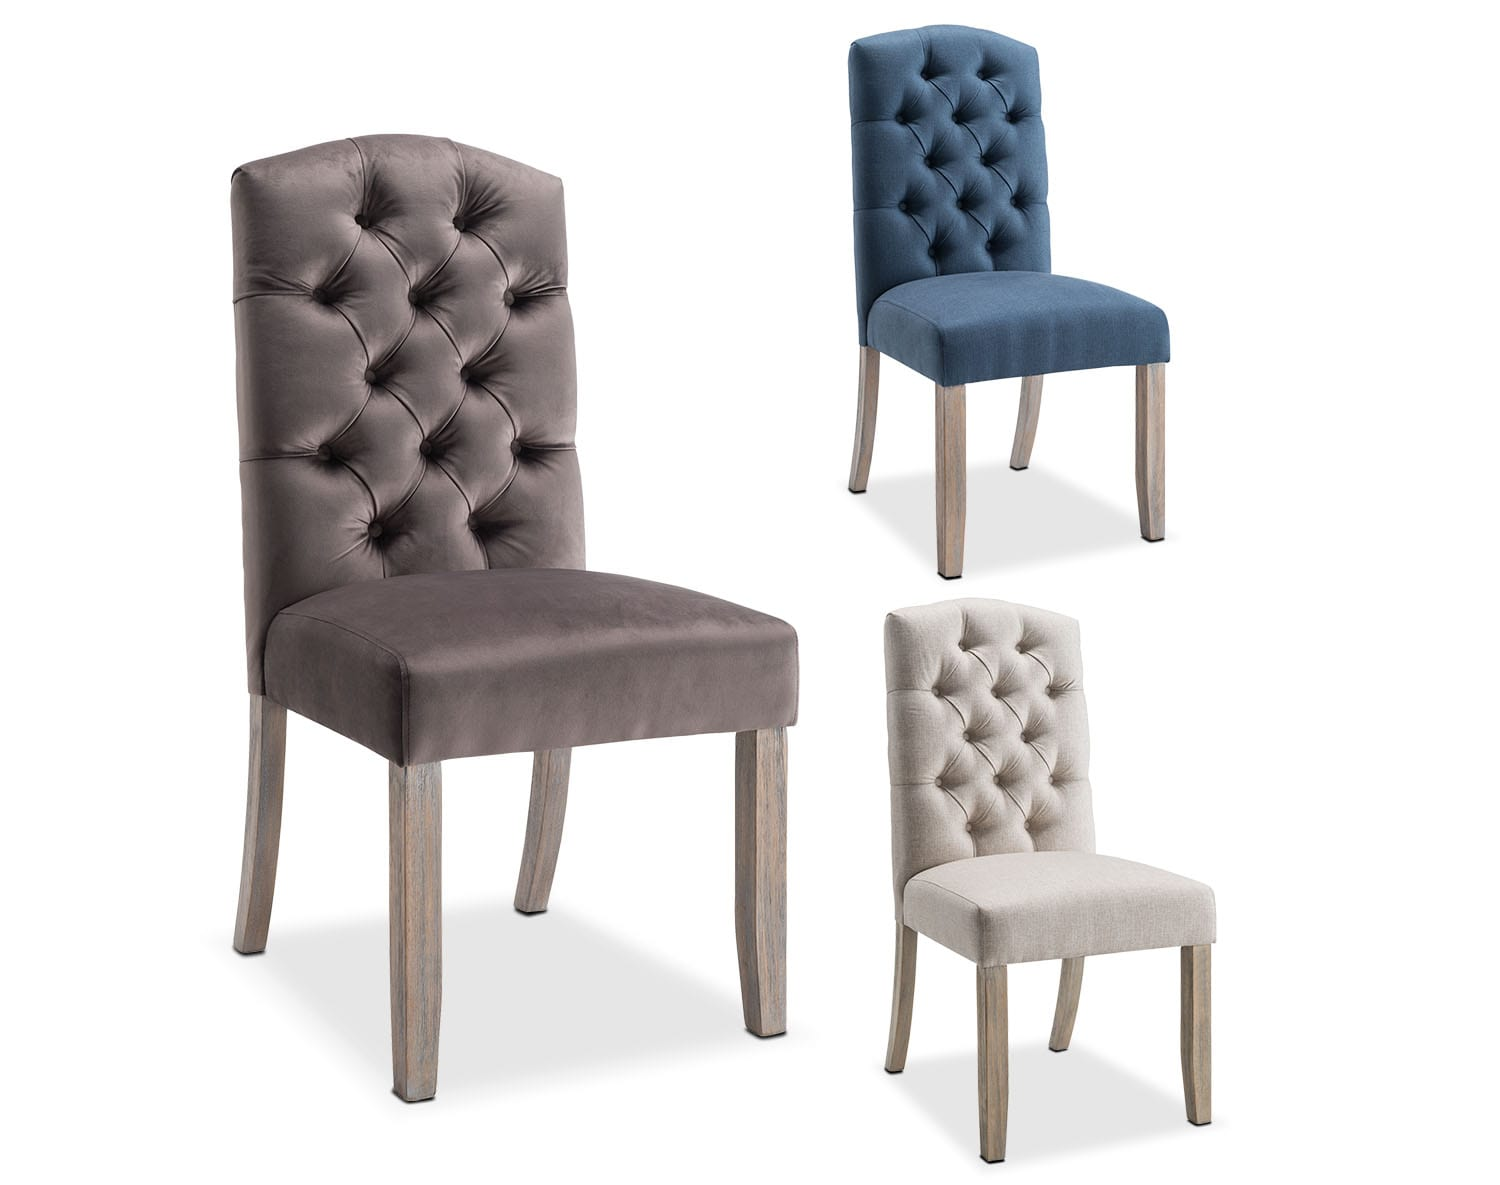 The Drexel Side Chair Collection